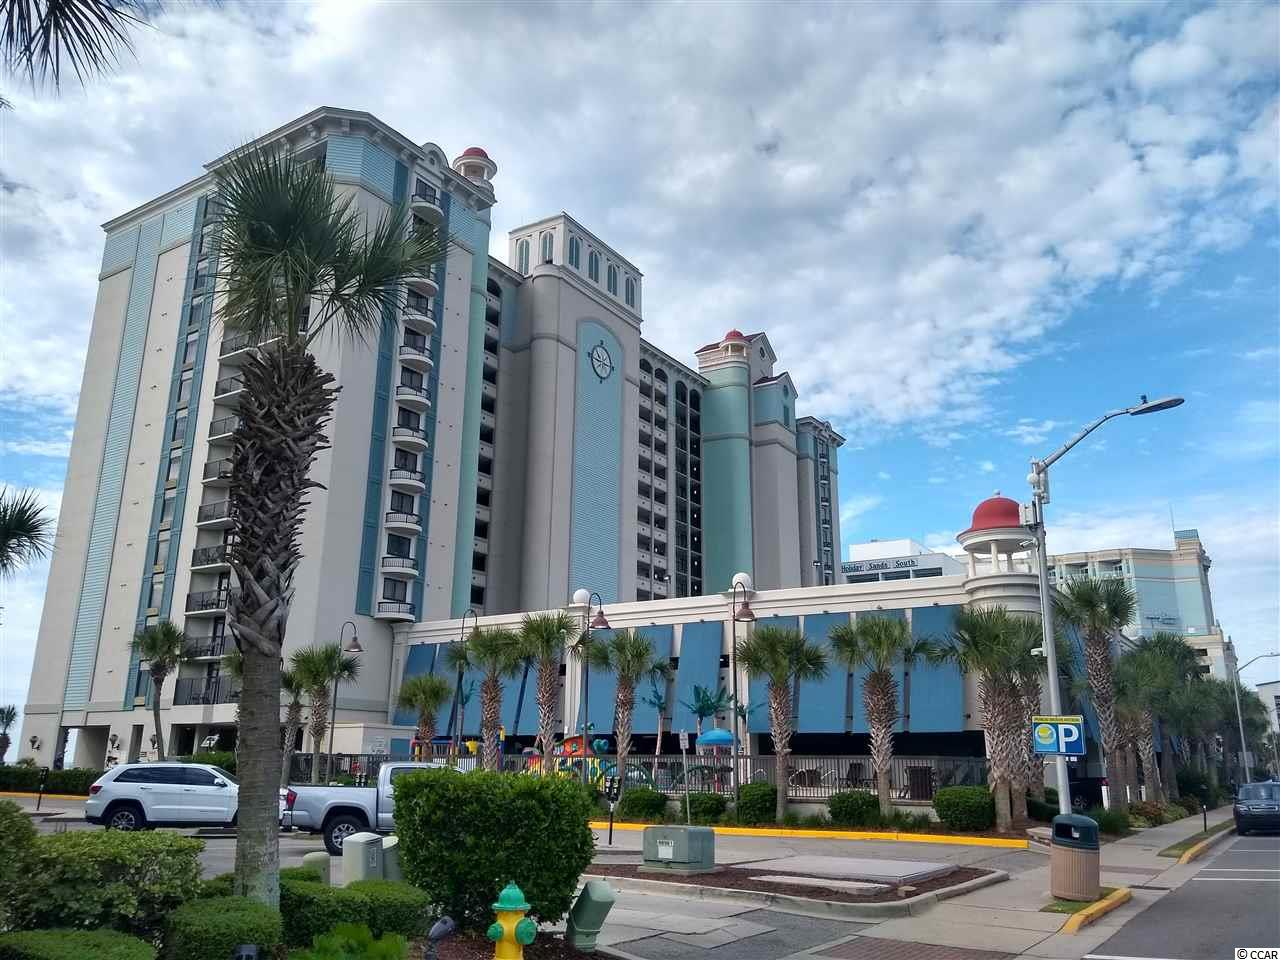 Condo in Compass Cove Pinnacle Oceanfront : Myrtle Beach South Carolina